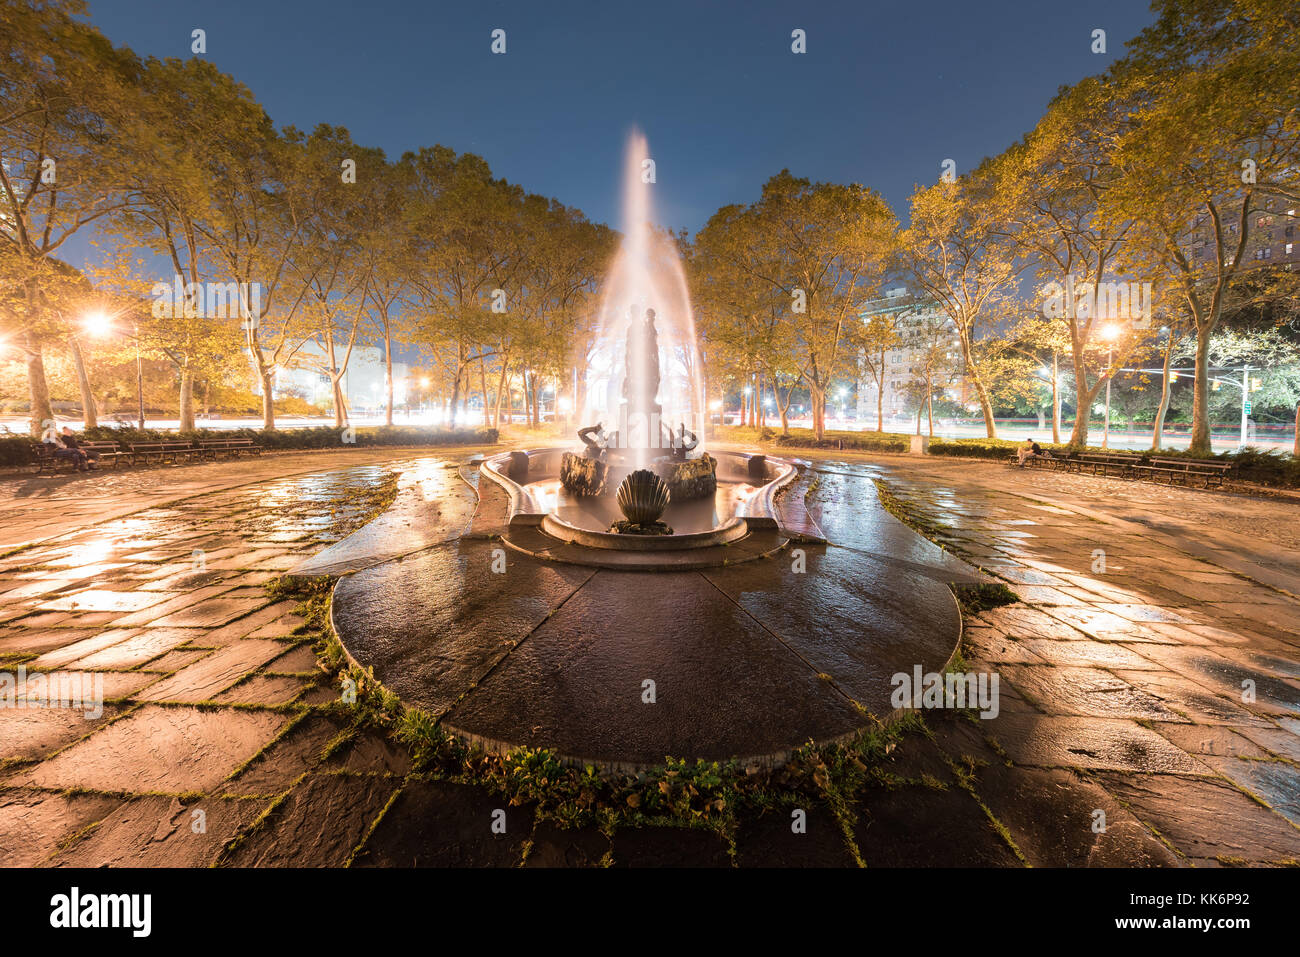 Bailey Fountain is a 19th century outdoor sculpture in New York City Grand Army Plaza, Brooklyn, New York, United - Stock Image